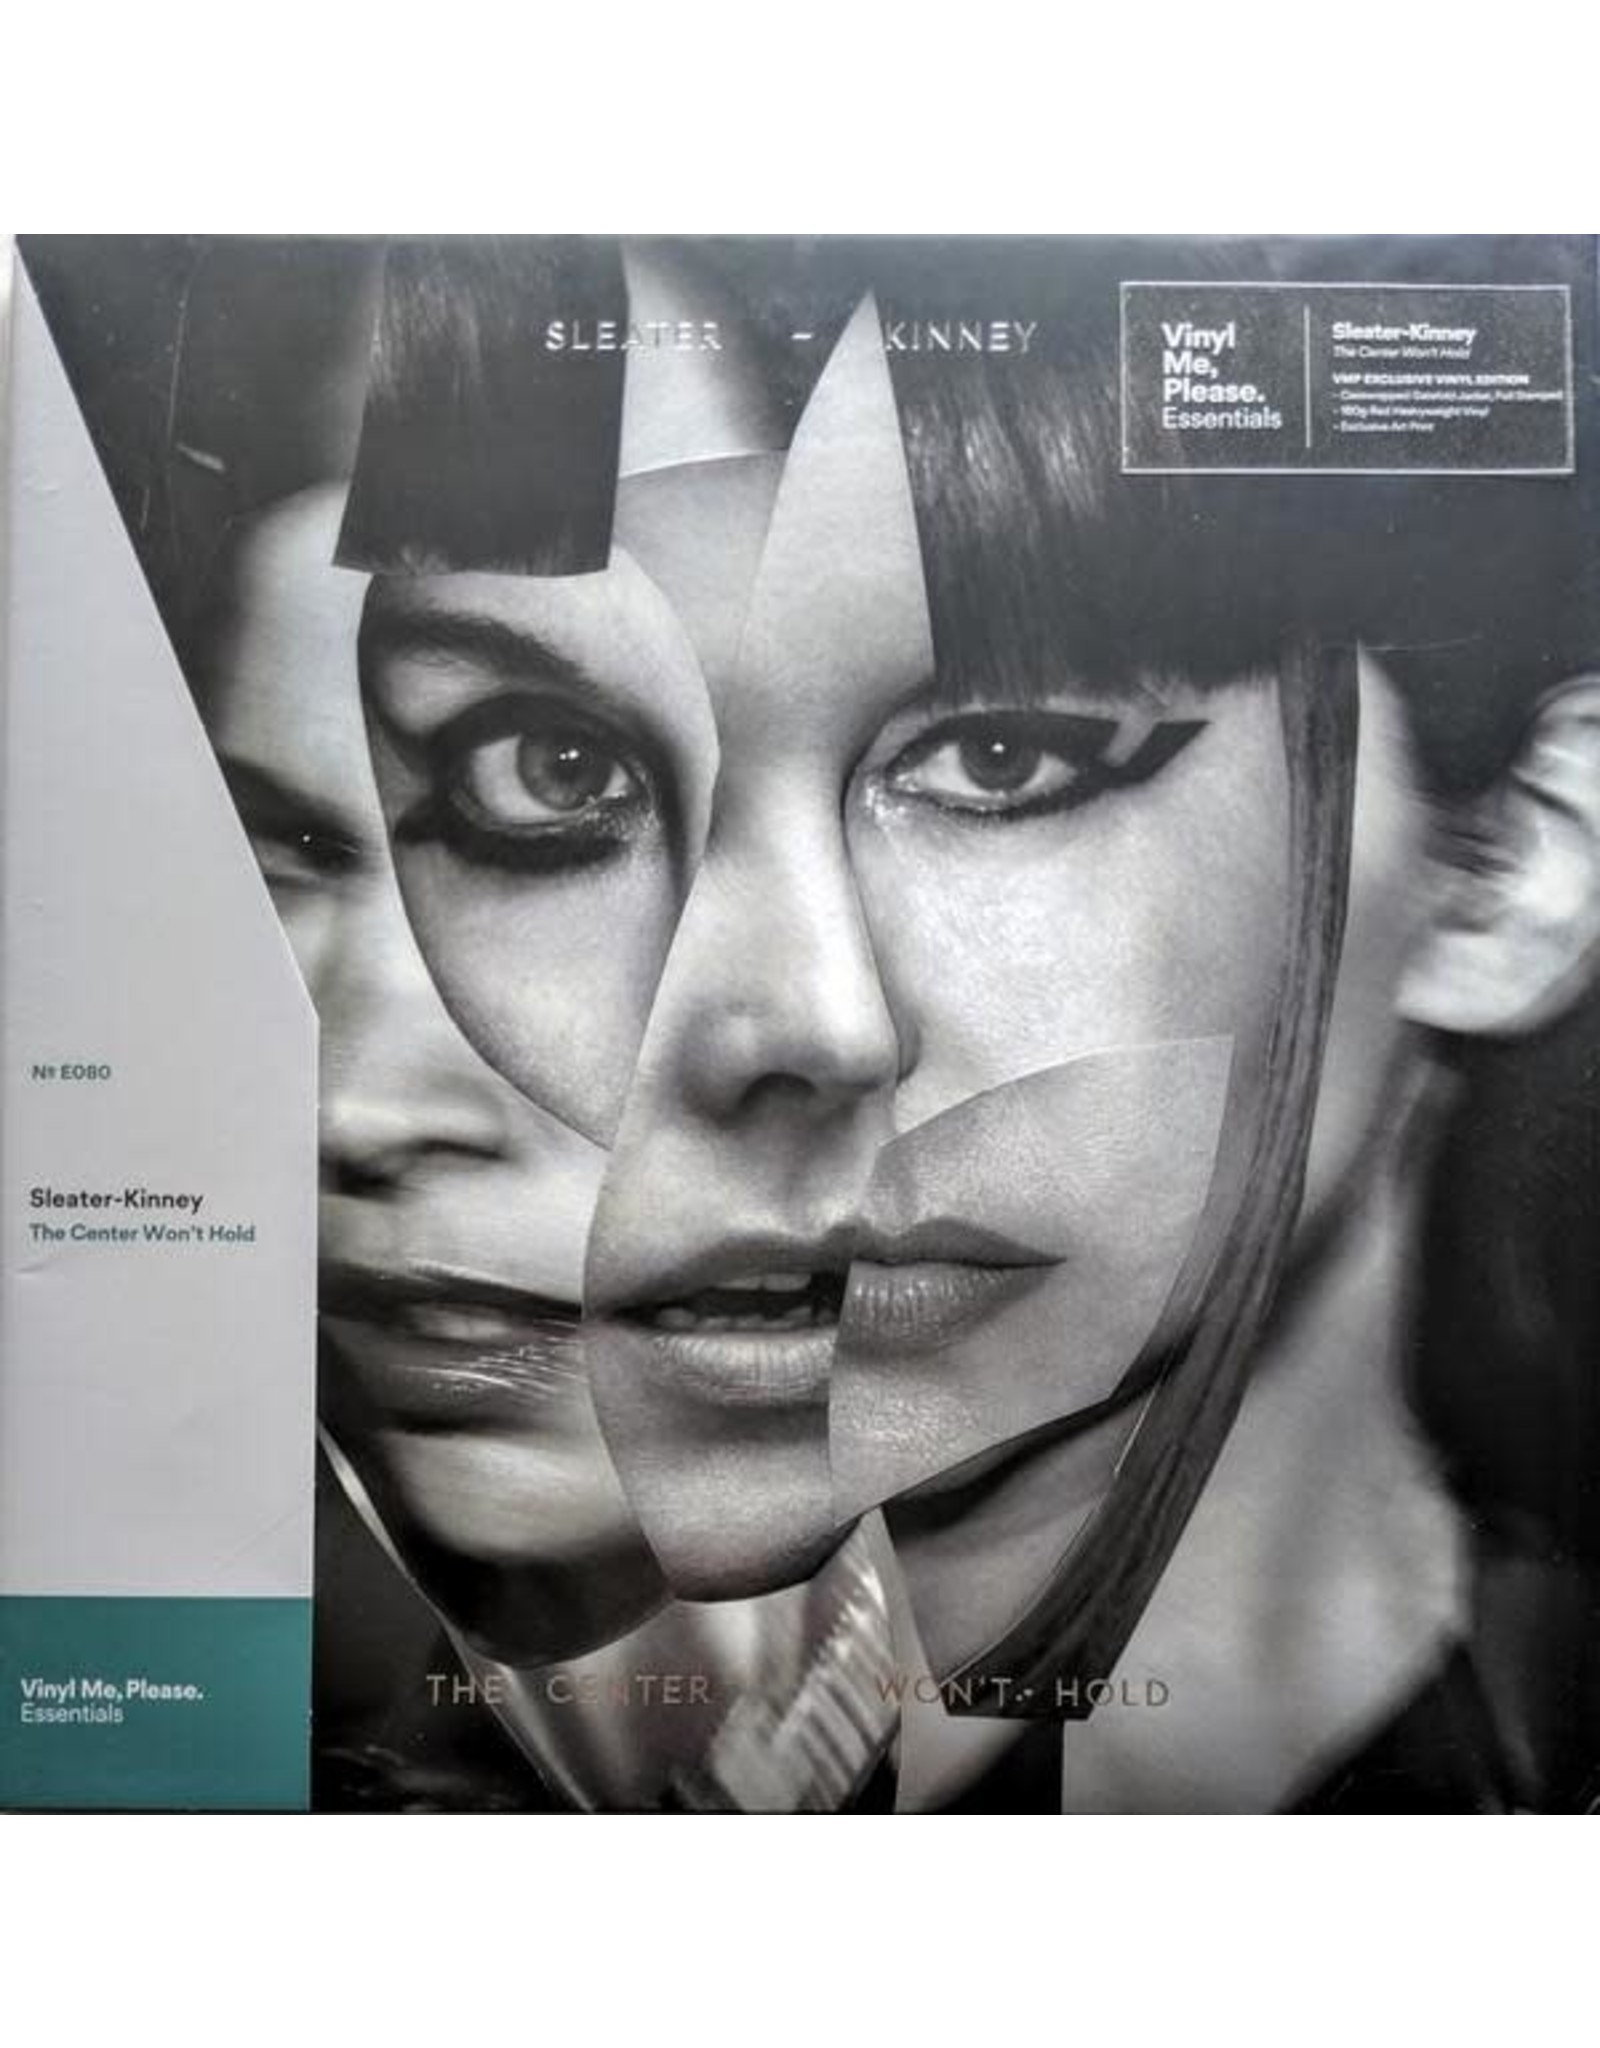 Sleater-Kinney - The Center Won't Hold (Vinyl Me, Please) LP